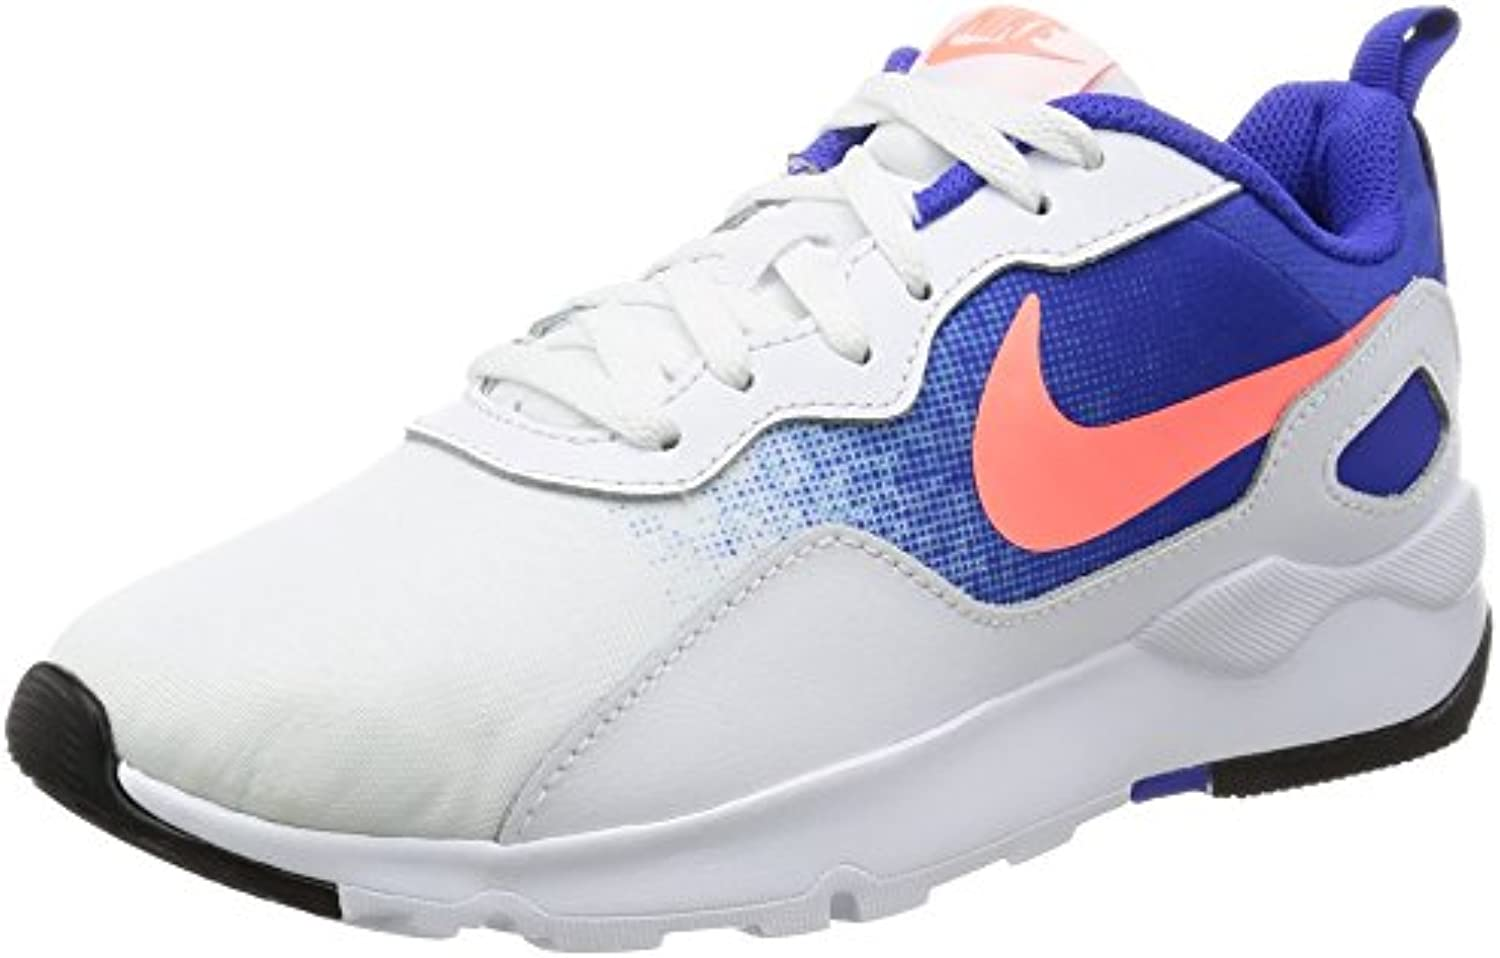 Nike Wmns LD Runner Scarpe Running Donna | Nuovo design diverso